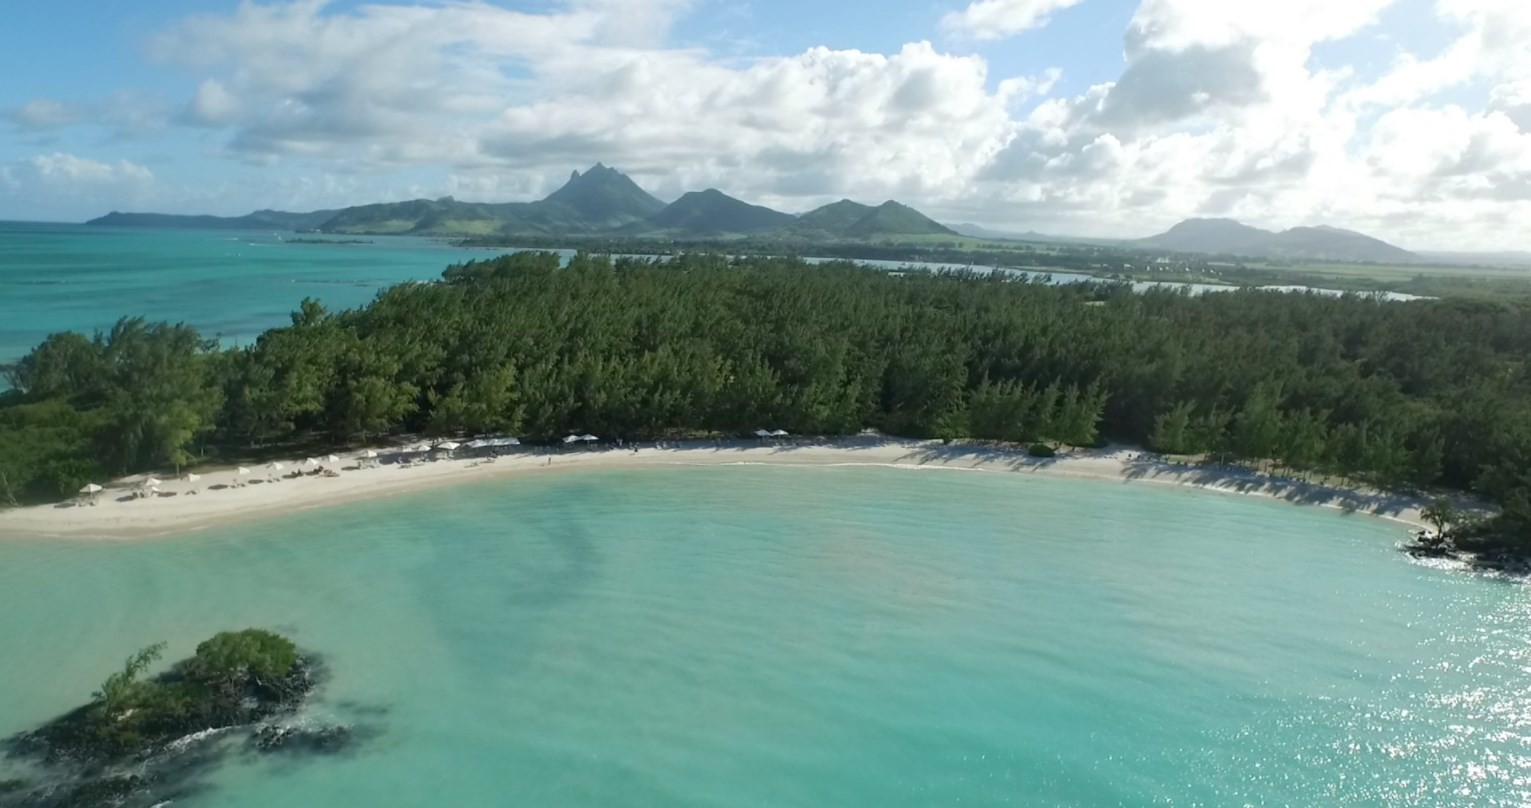 news-main-new-tourism-promotion-campaign-for-mauritius.1603888543.jpg